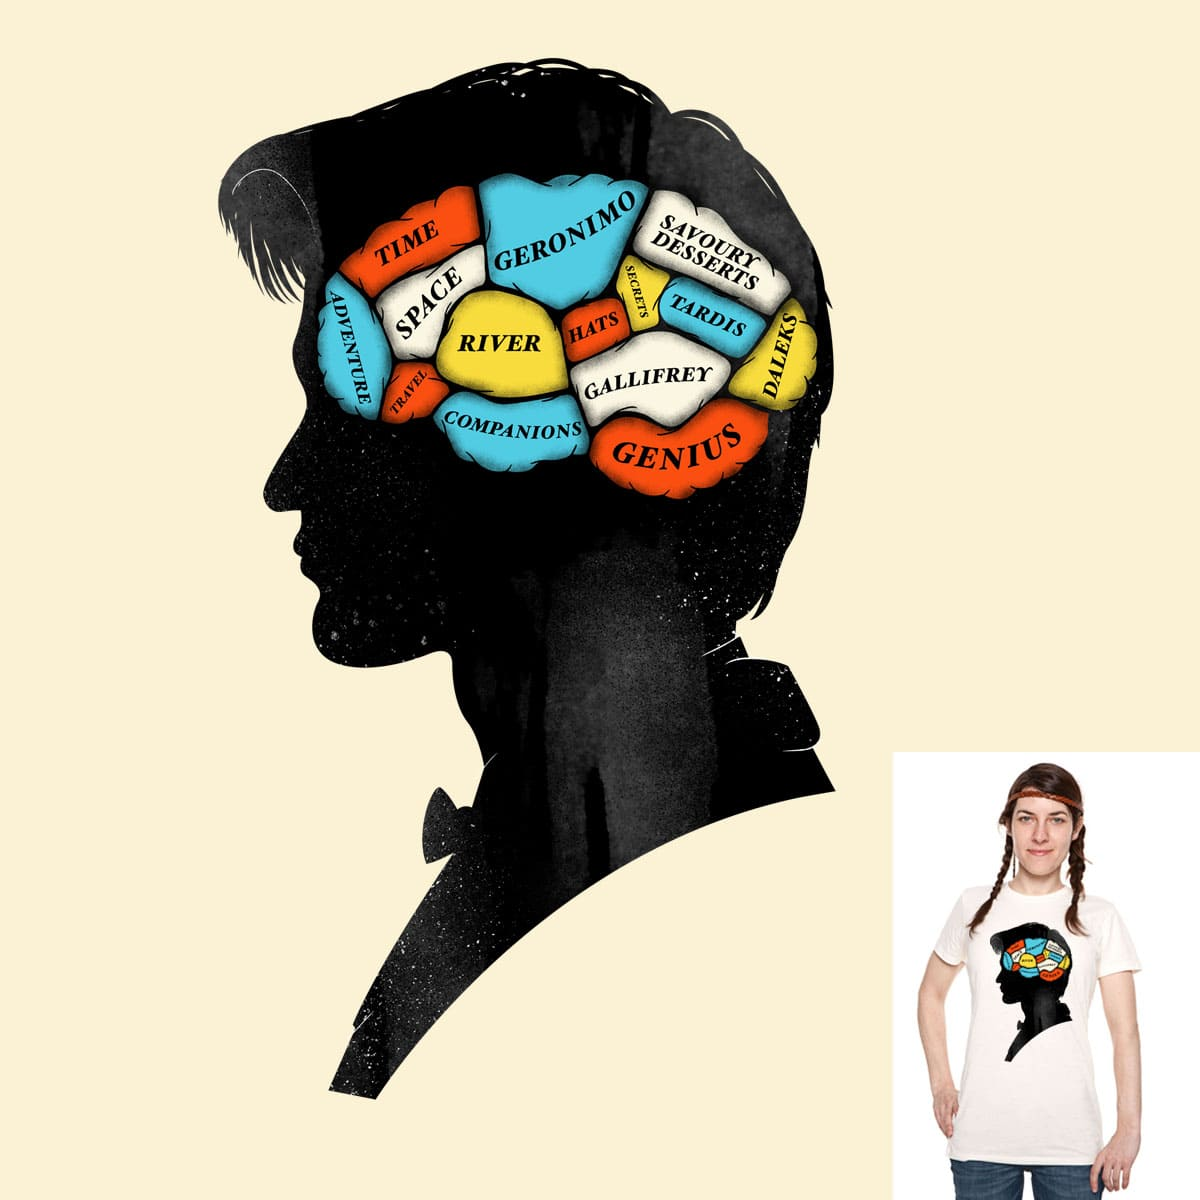 Doctor Phrenology by Wharton on Threadless